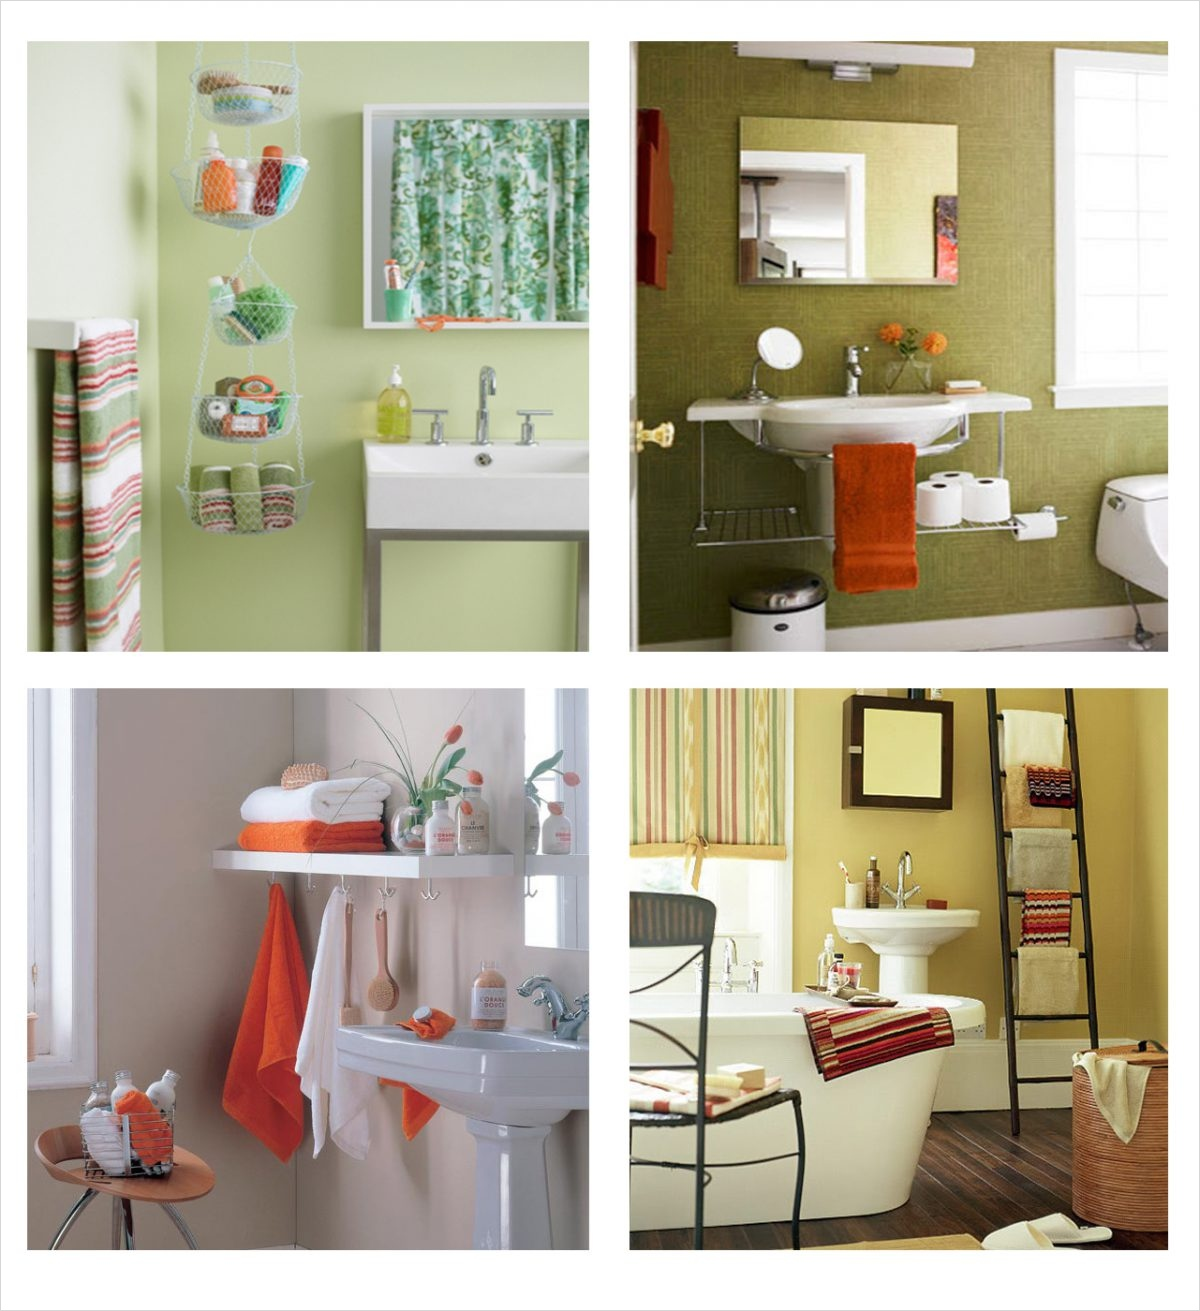 Bathroom Shelves Decorating Ideas 97 Outstanding Bathroom Designs for Small Spaces Pics Decors – Dievoon 2